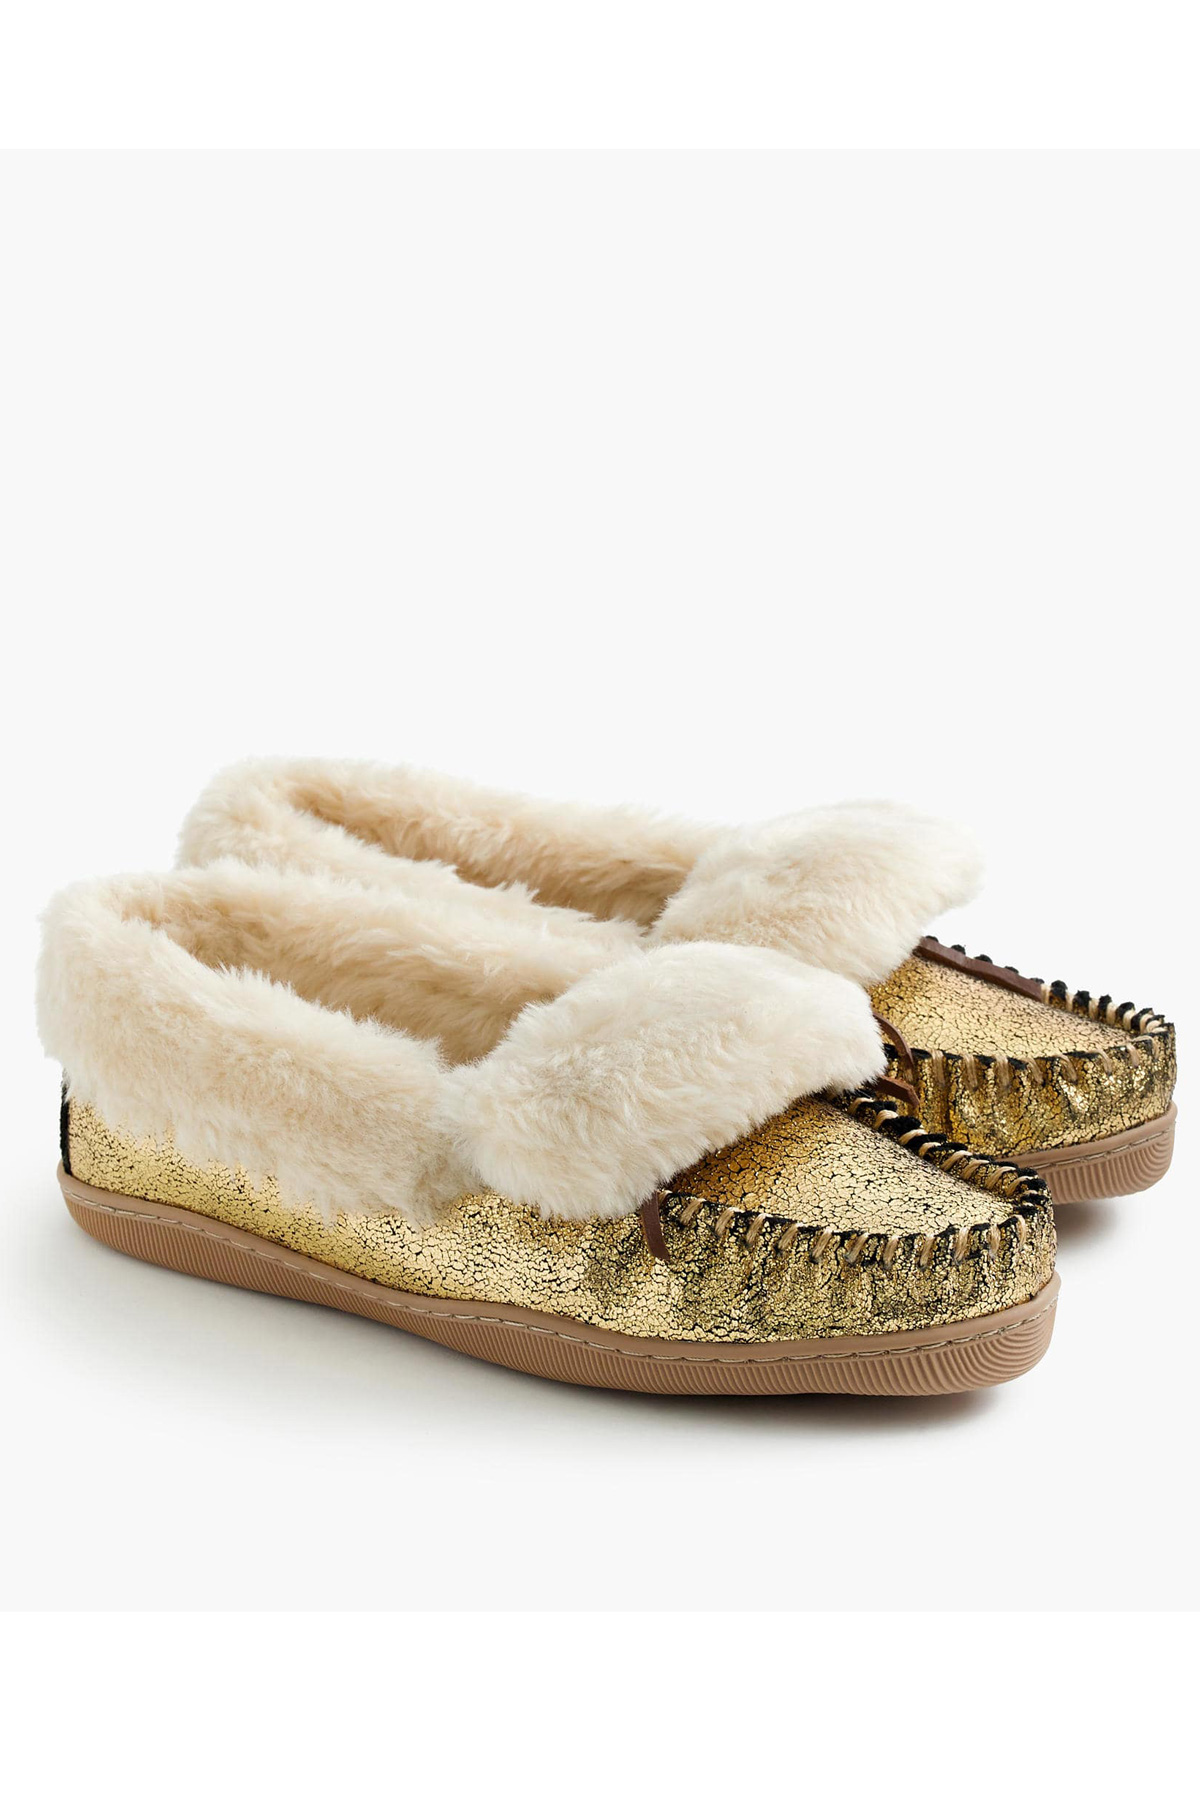 J. Crew Lodge Moccasins